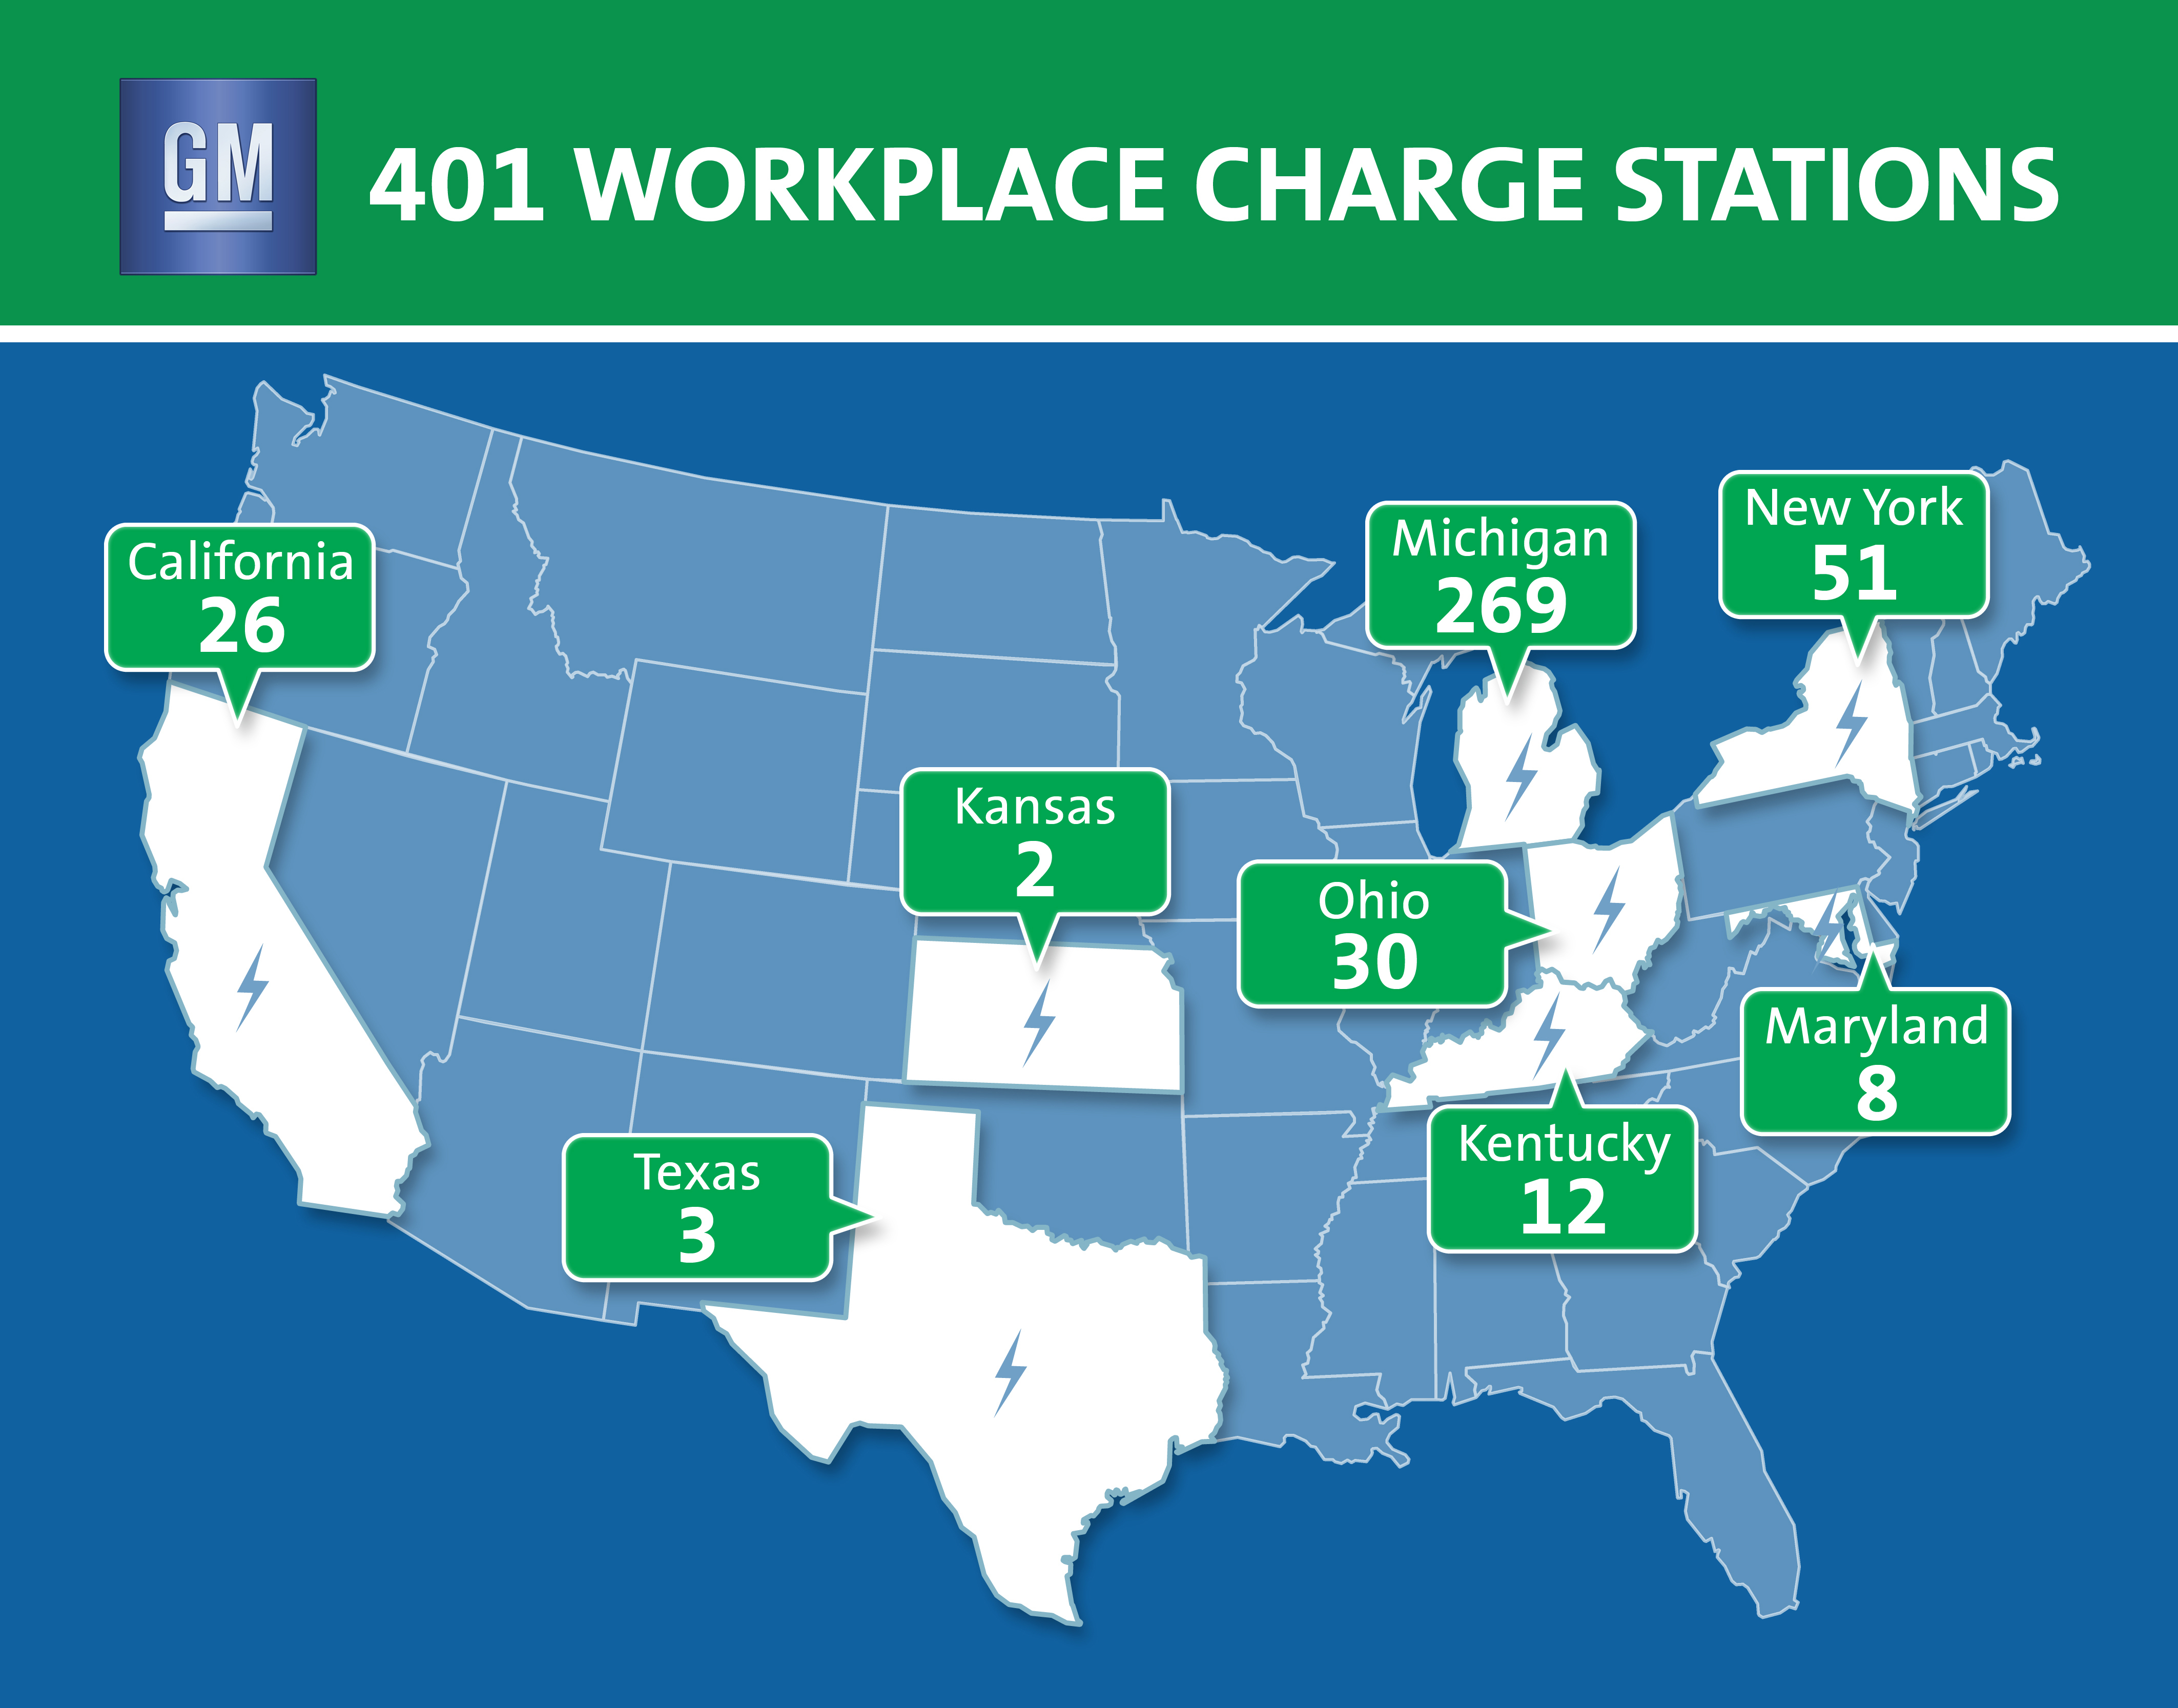 Gm Surpasses 400 Ev Charge Stations At U.s. Facilities - Charging Station Map California